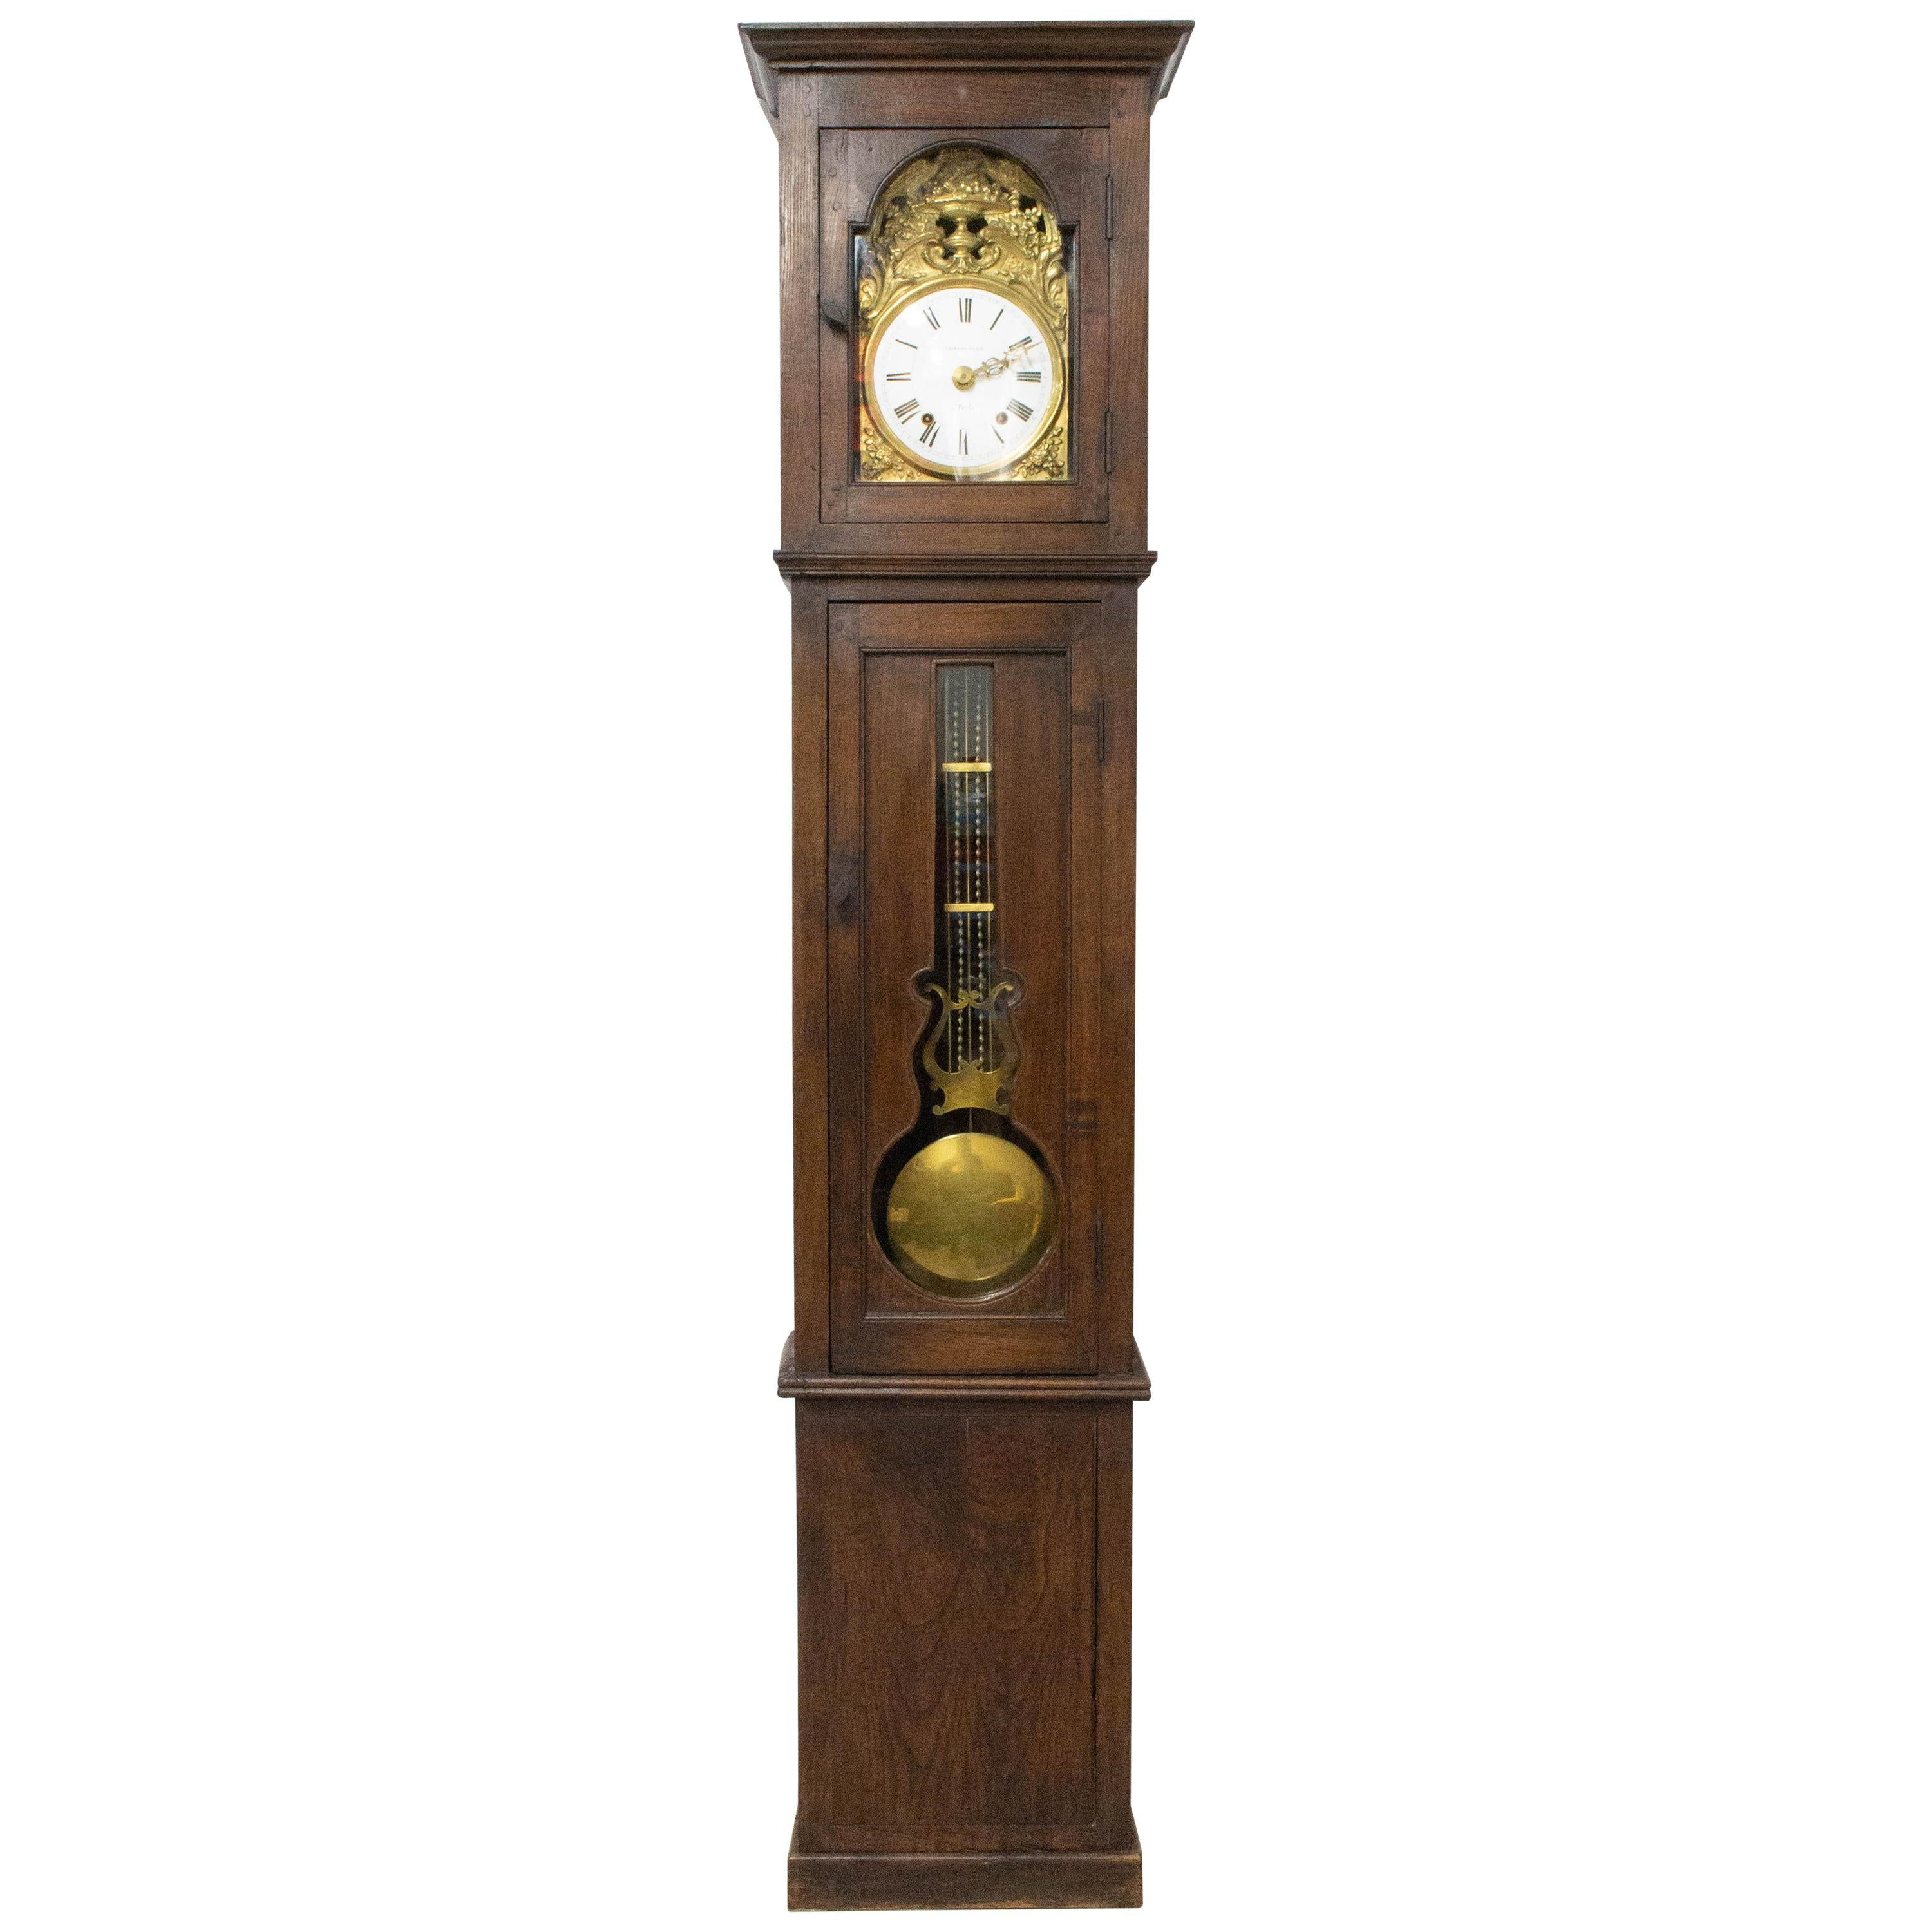 19th Century French Longcase or Grandfather Clock